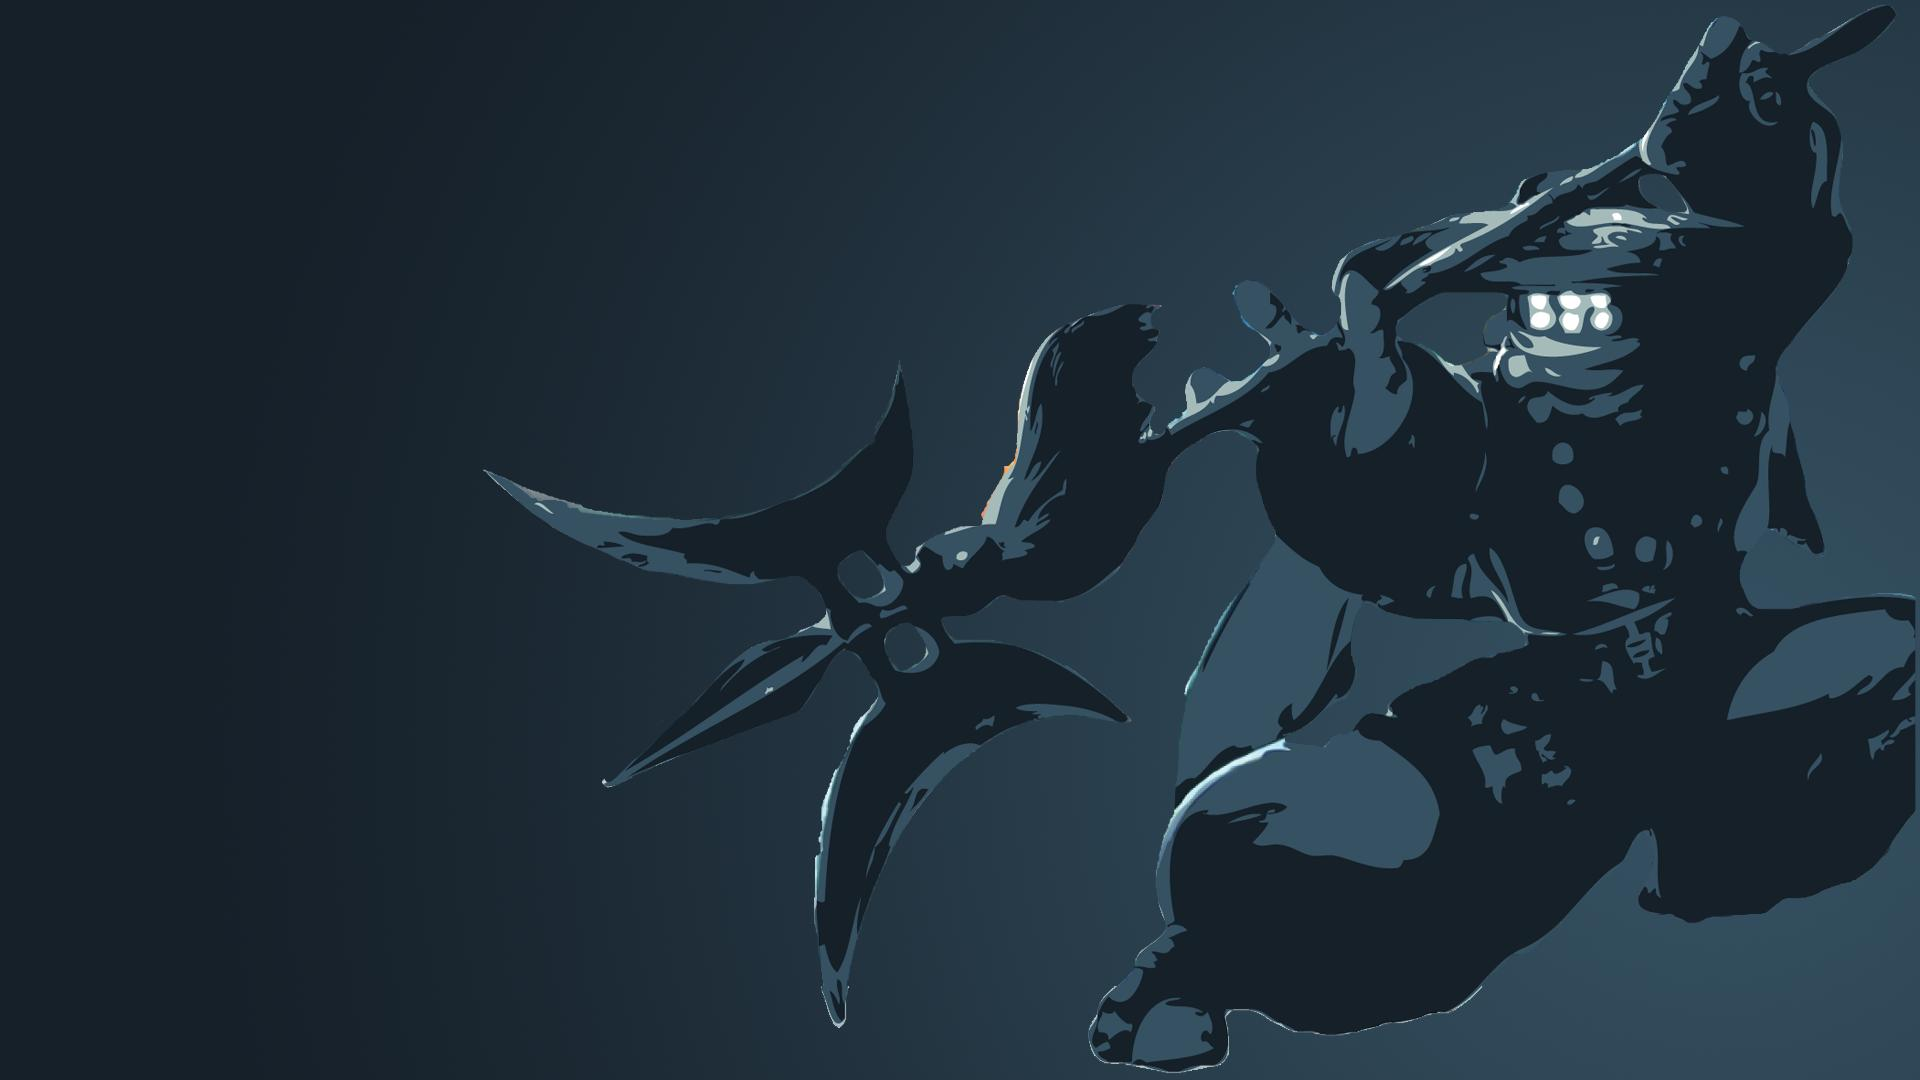 Temple Jax Minimalistic wallpaper